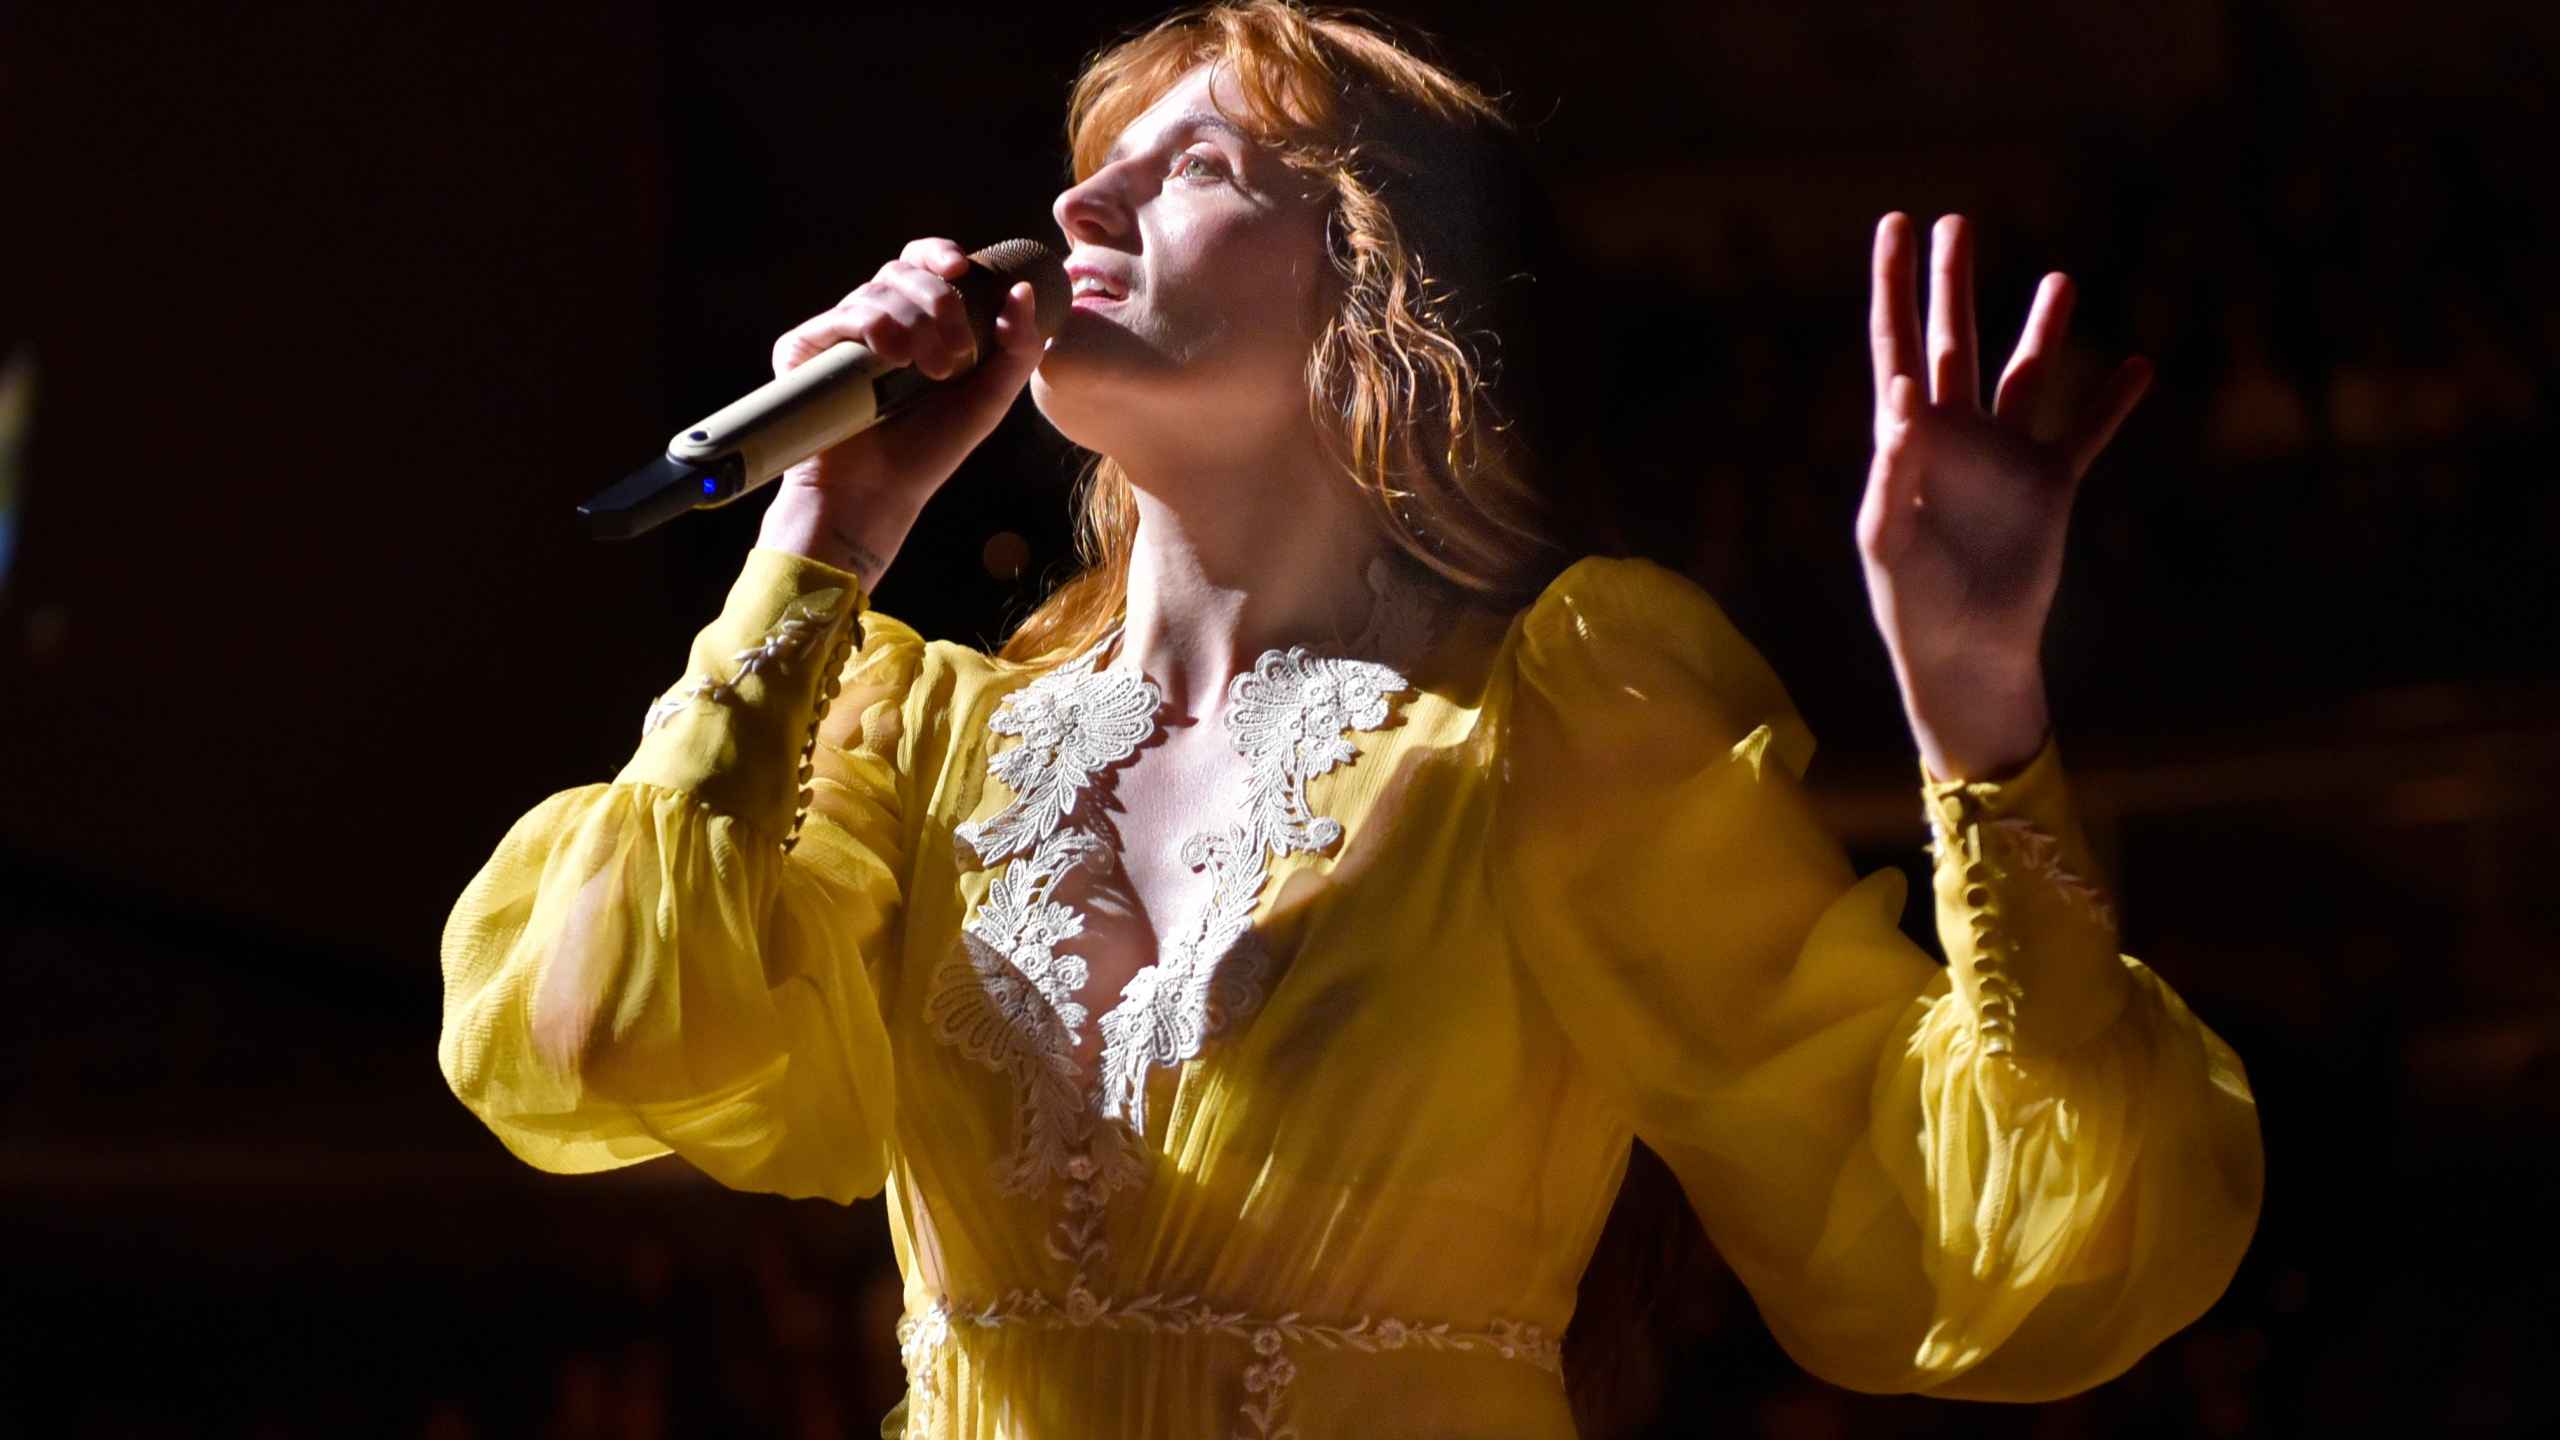 Florence Welch